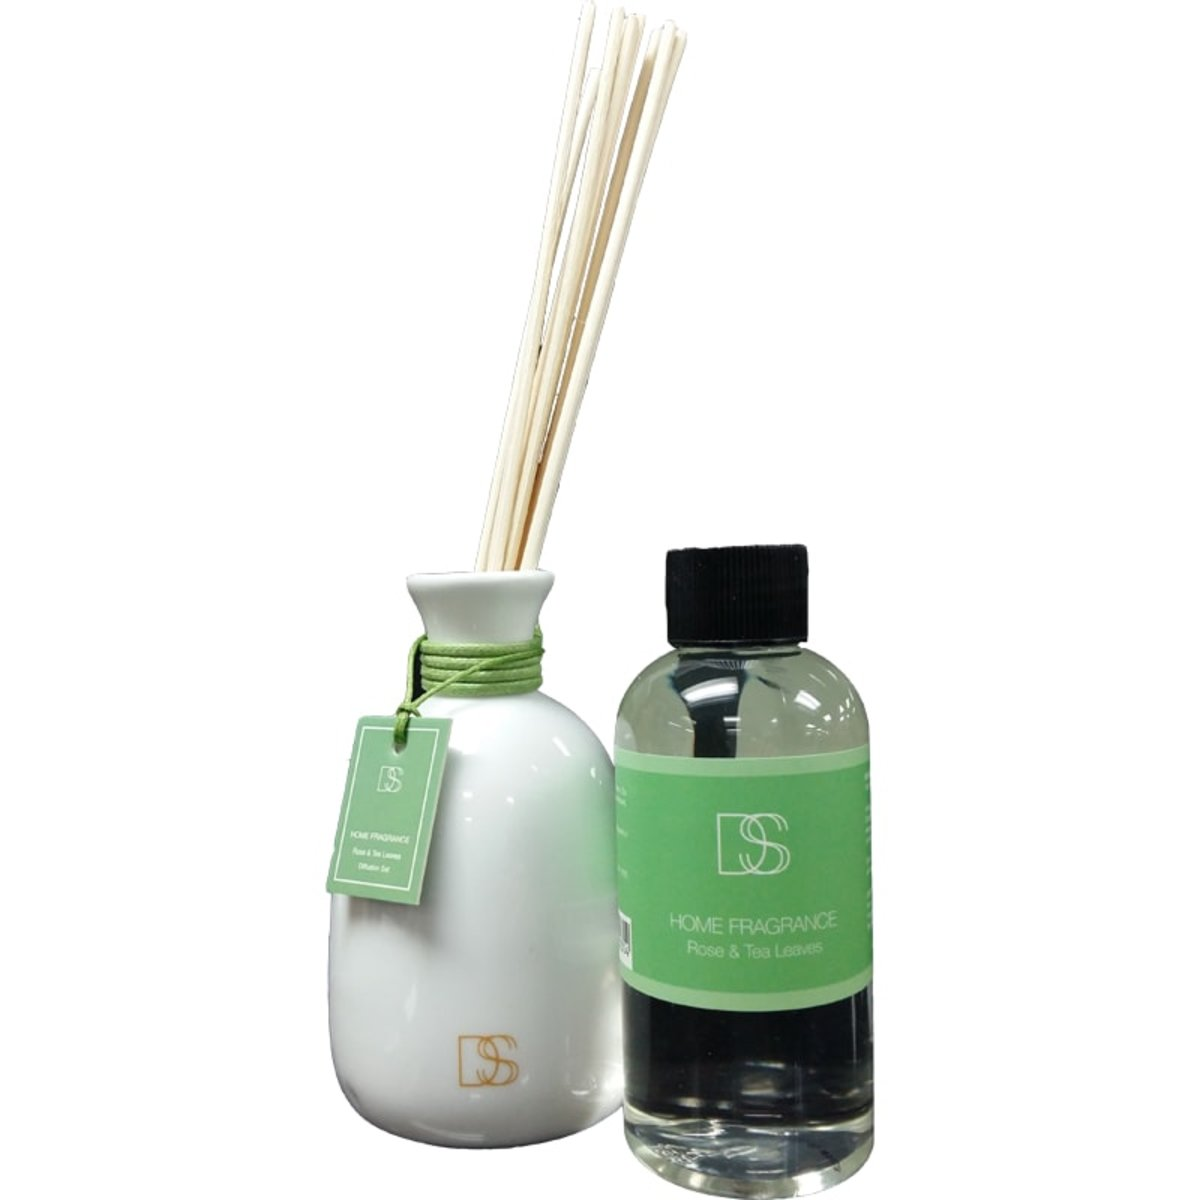 DSS Rose & Tea Leaves Diffuser 玫瑰與茶青香薰  綠色  145ml